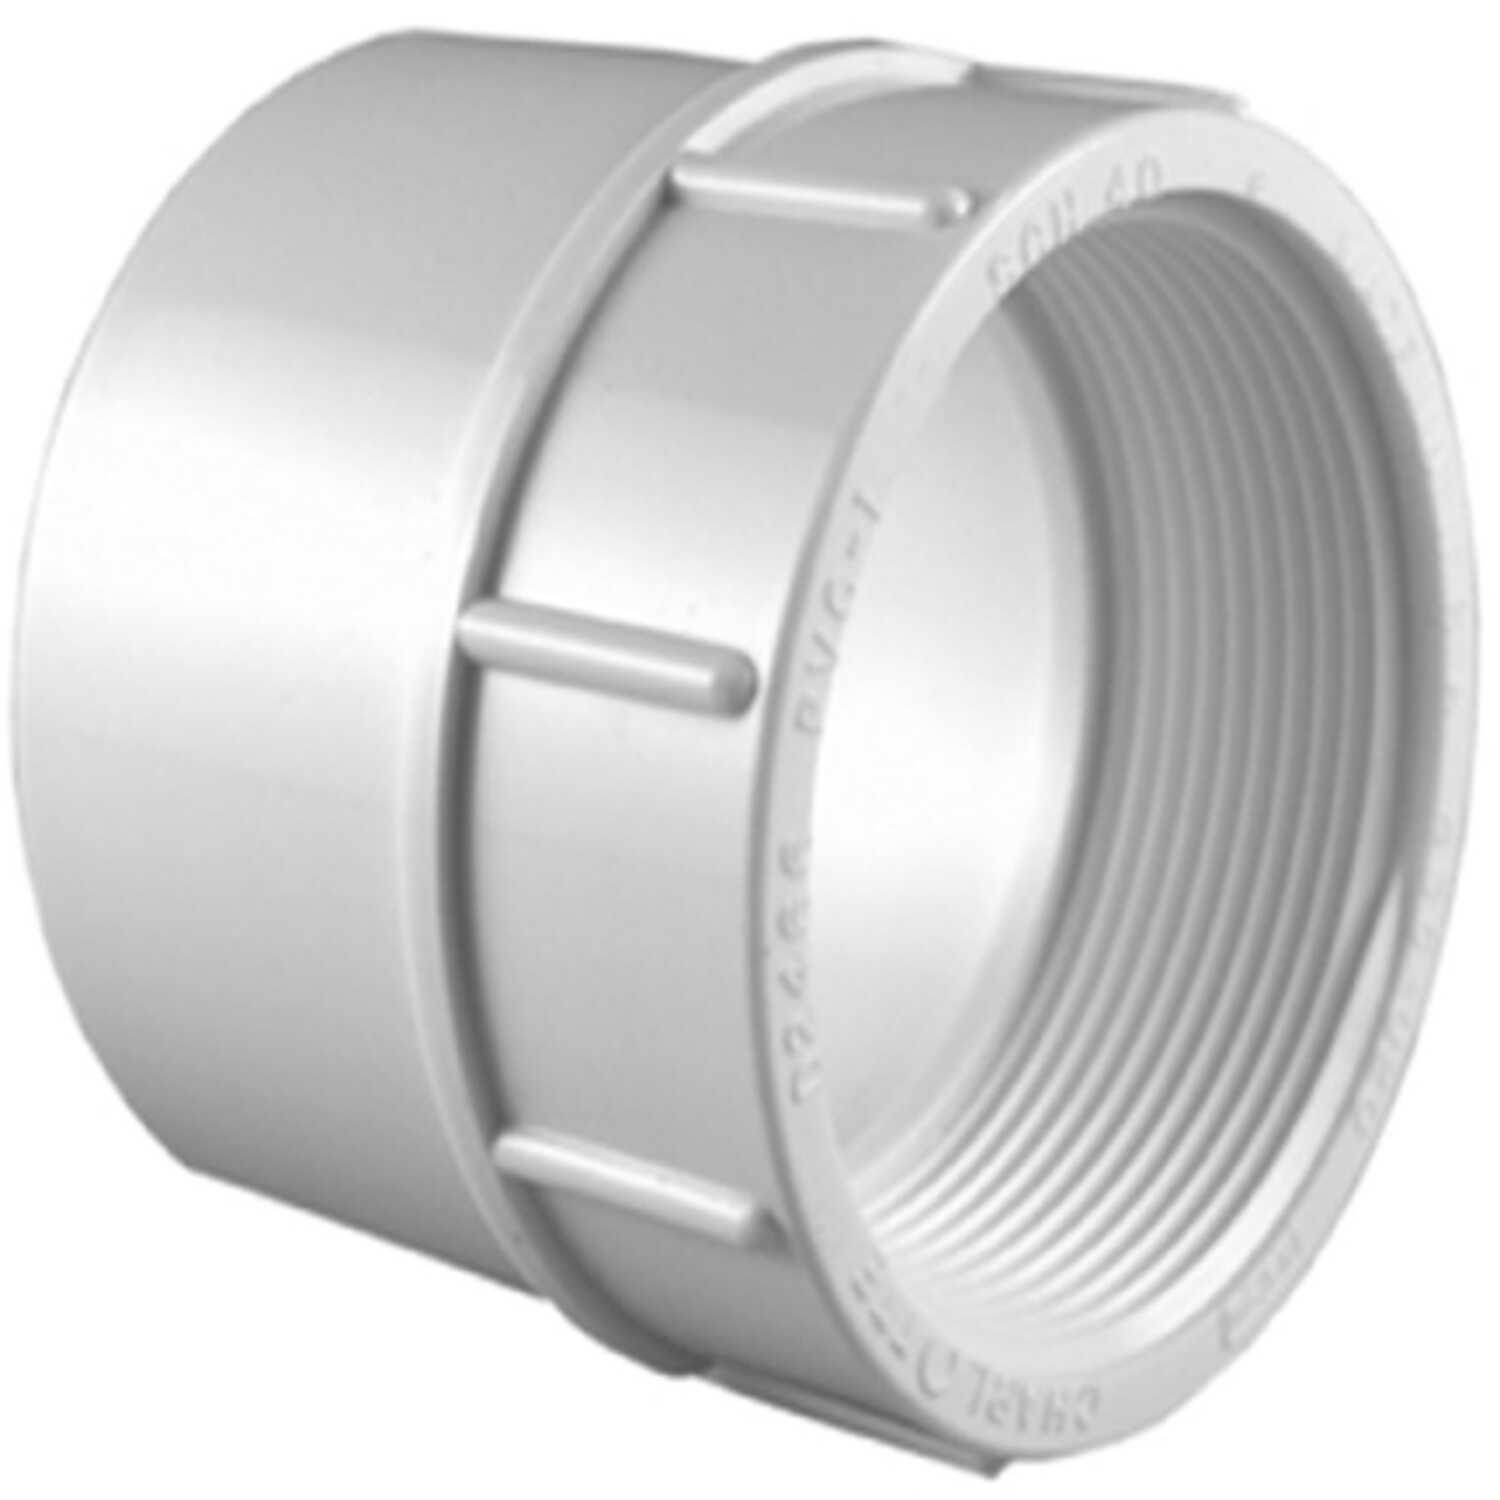 Charlotte Pipe  3/4 in. Slip   x 1 in. Dia. FPT  Pipe Adapter